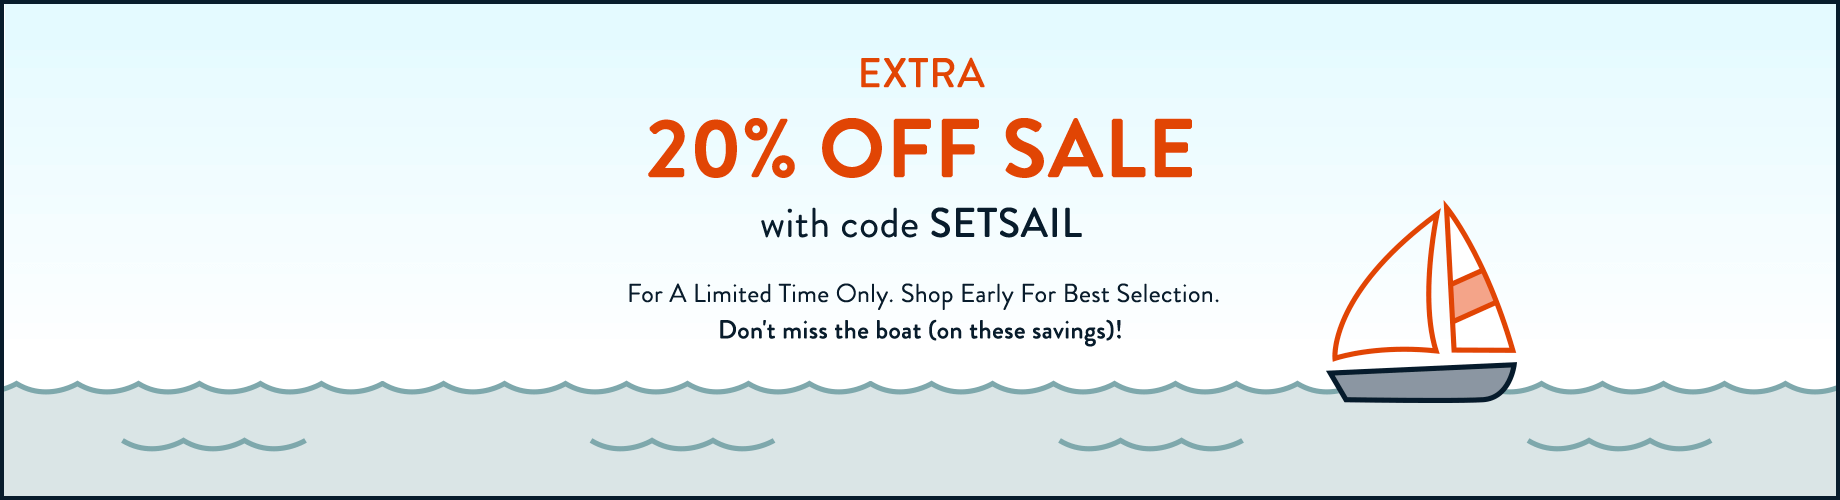 Extra 20% Off Sale | With Code SETSAIL | For A Limited Time Only. Shop Early For Best Selection. Don't miss the boat (on these savings)!